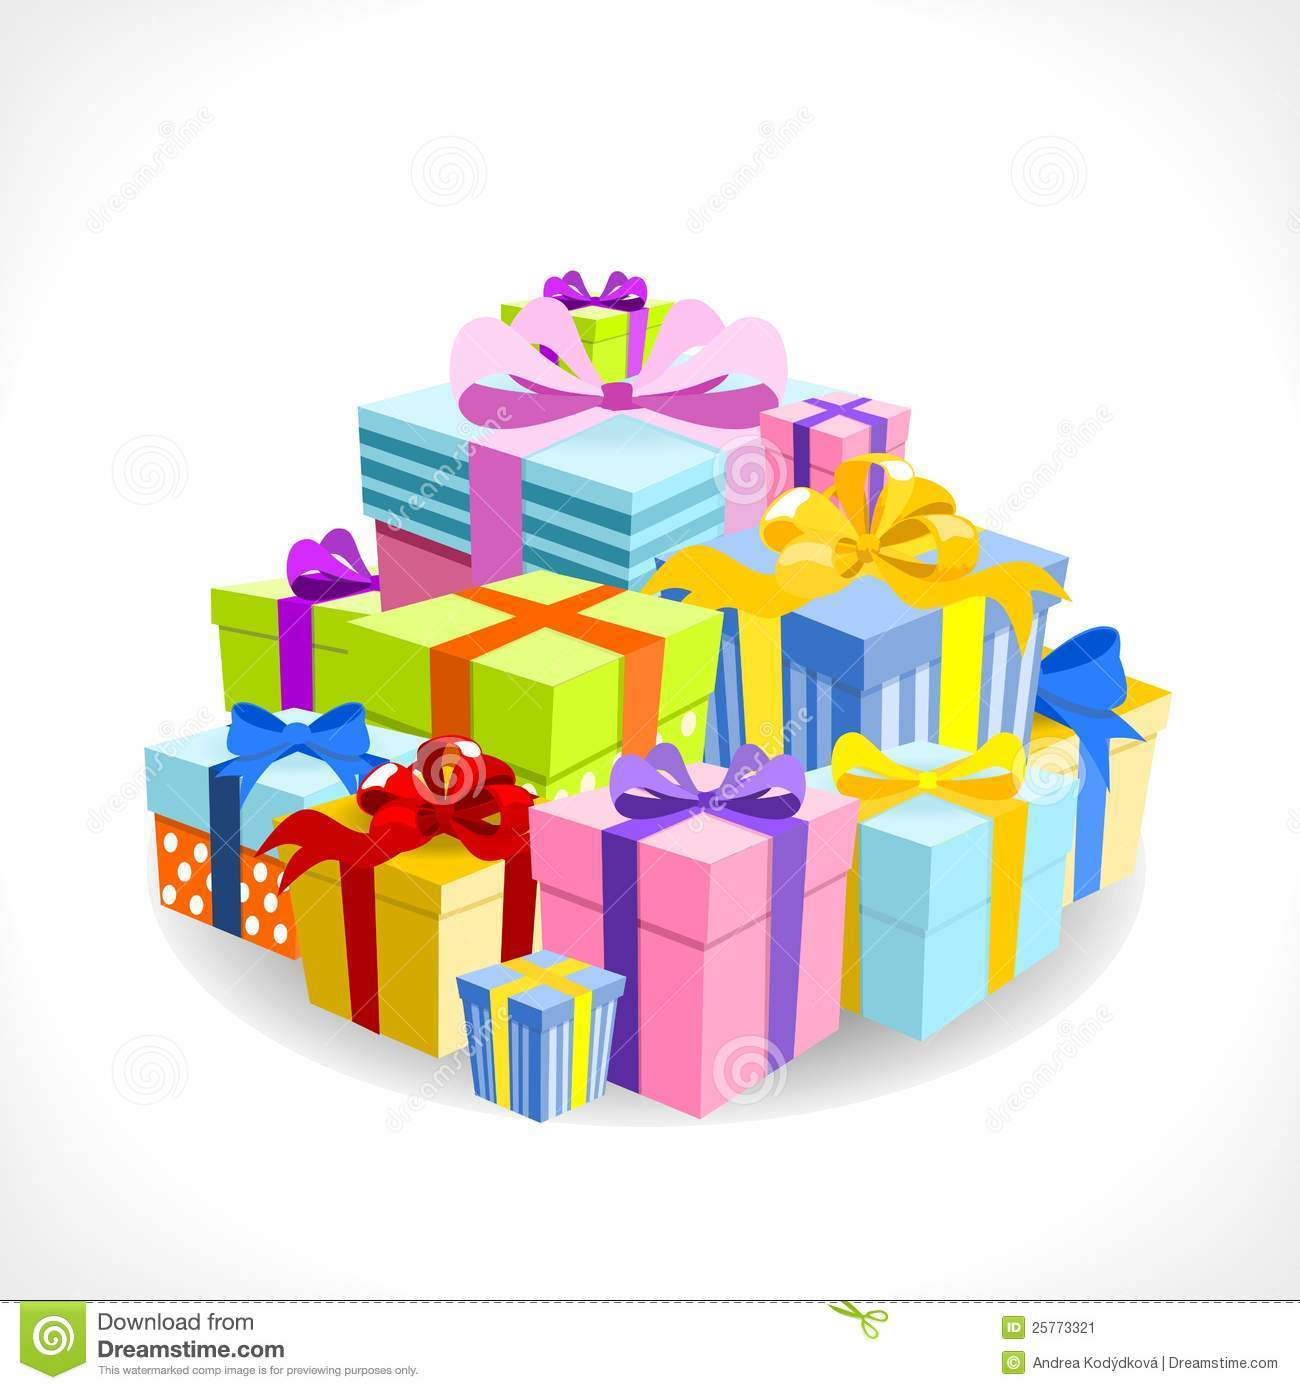 birthday presents clip art free ; pink-birthday-present-clip-art-pile-colorful-gifts-25773321